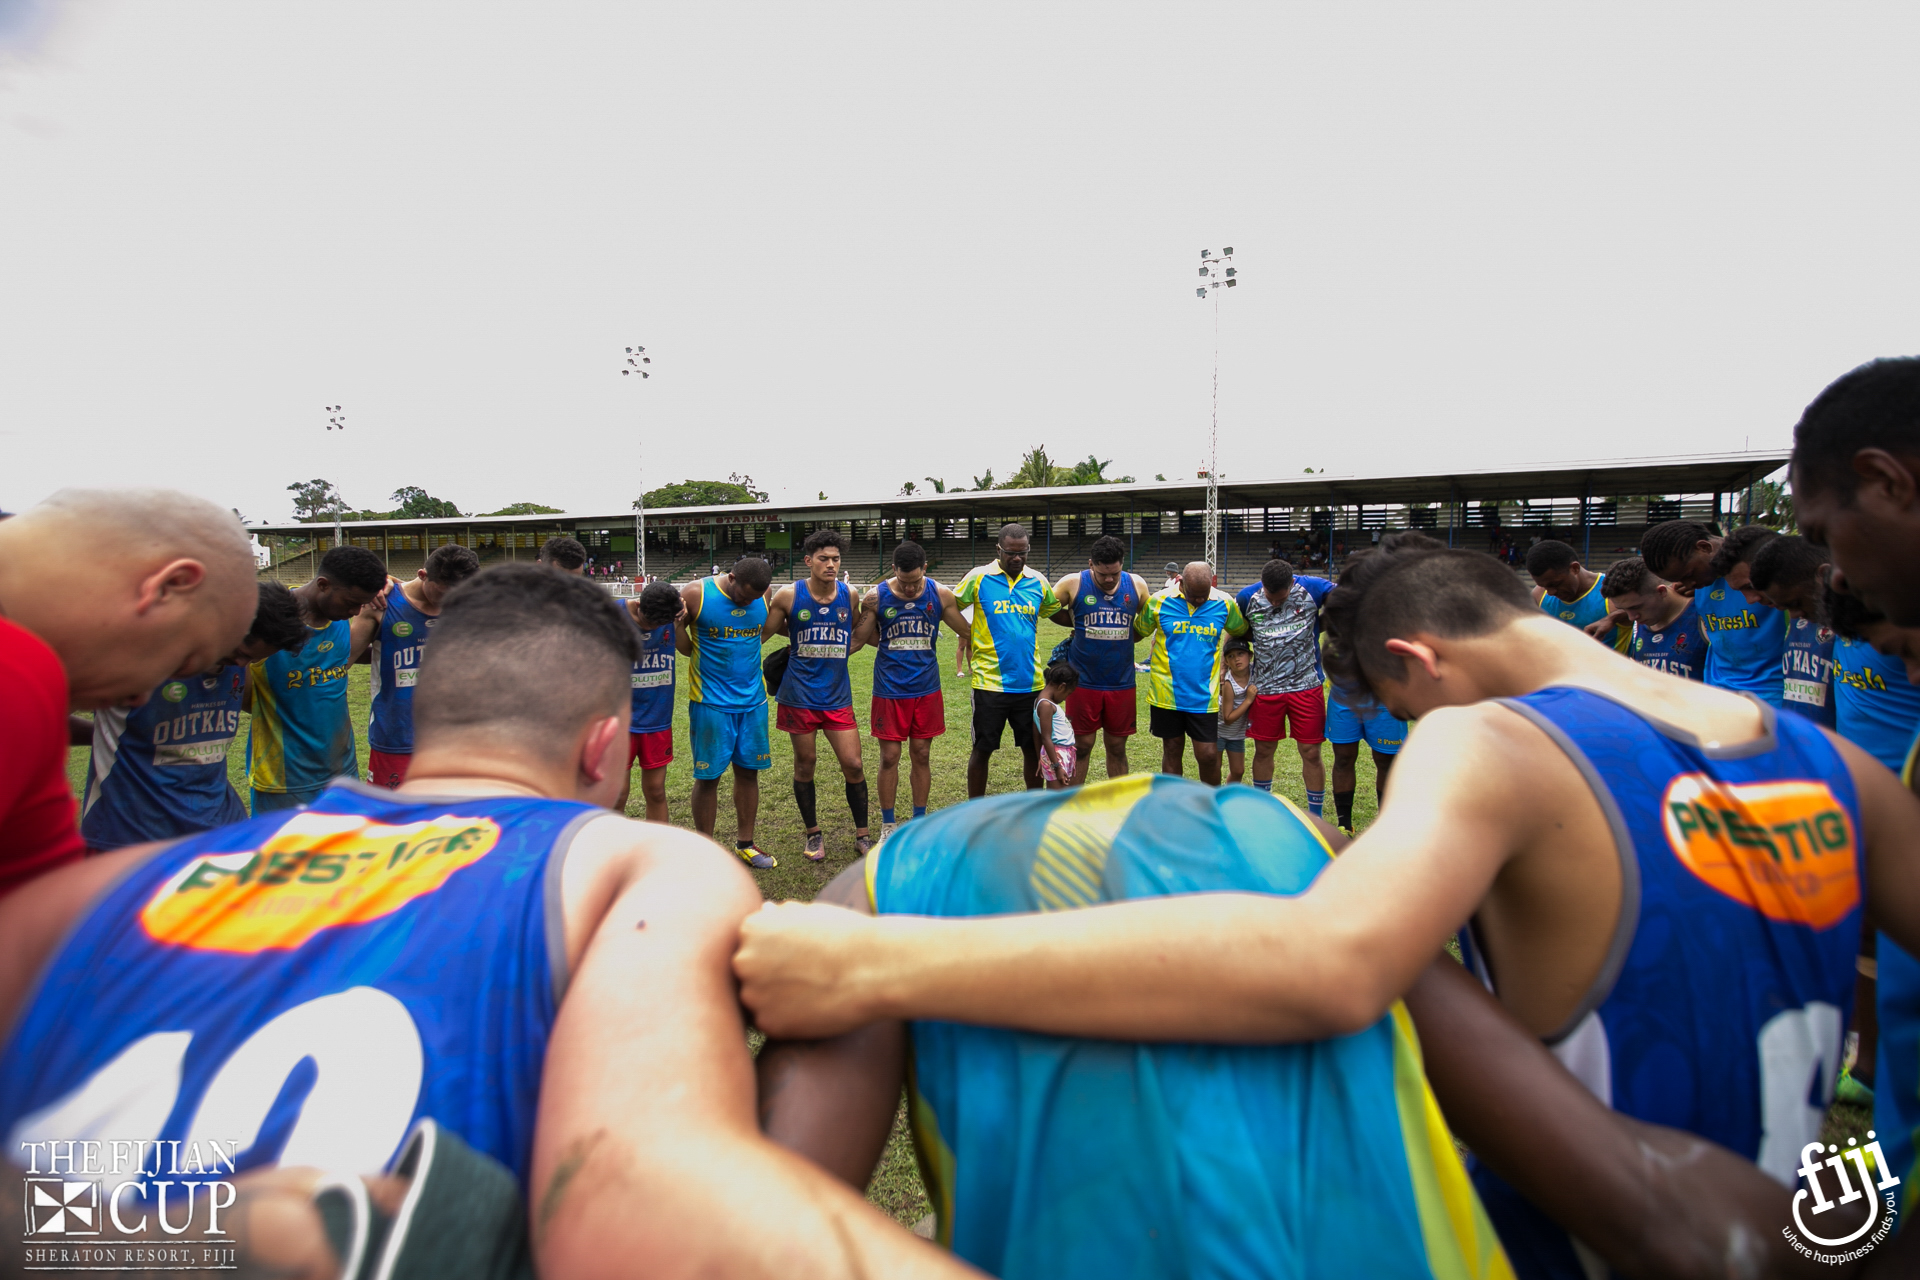 Health Benefits for The Fijian Cup